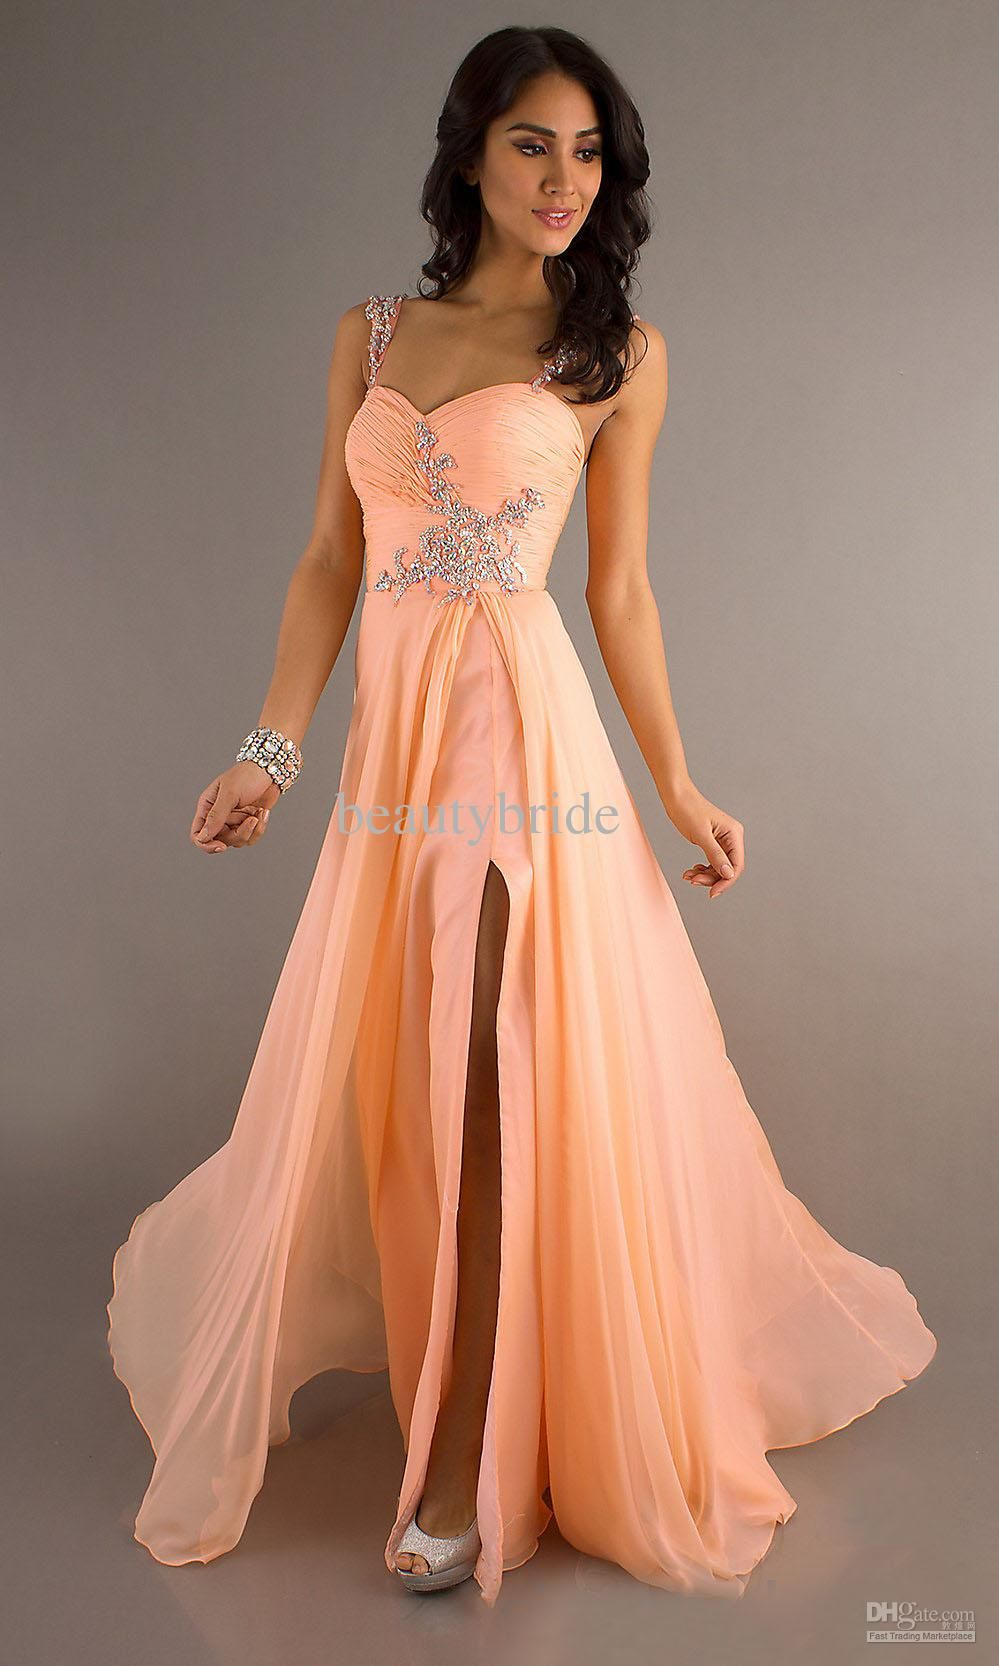 great color | wedding | Pinterest | Colors, Dresses and Peaches